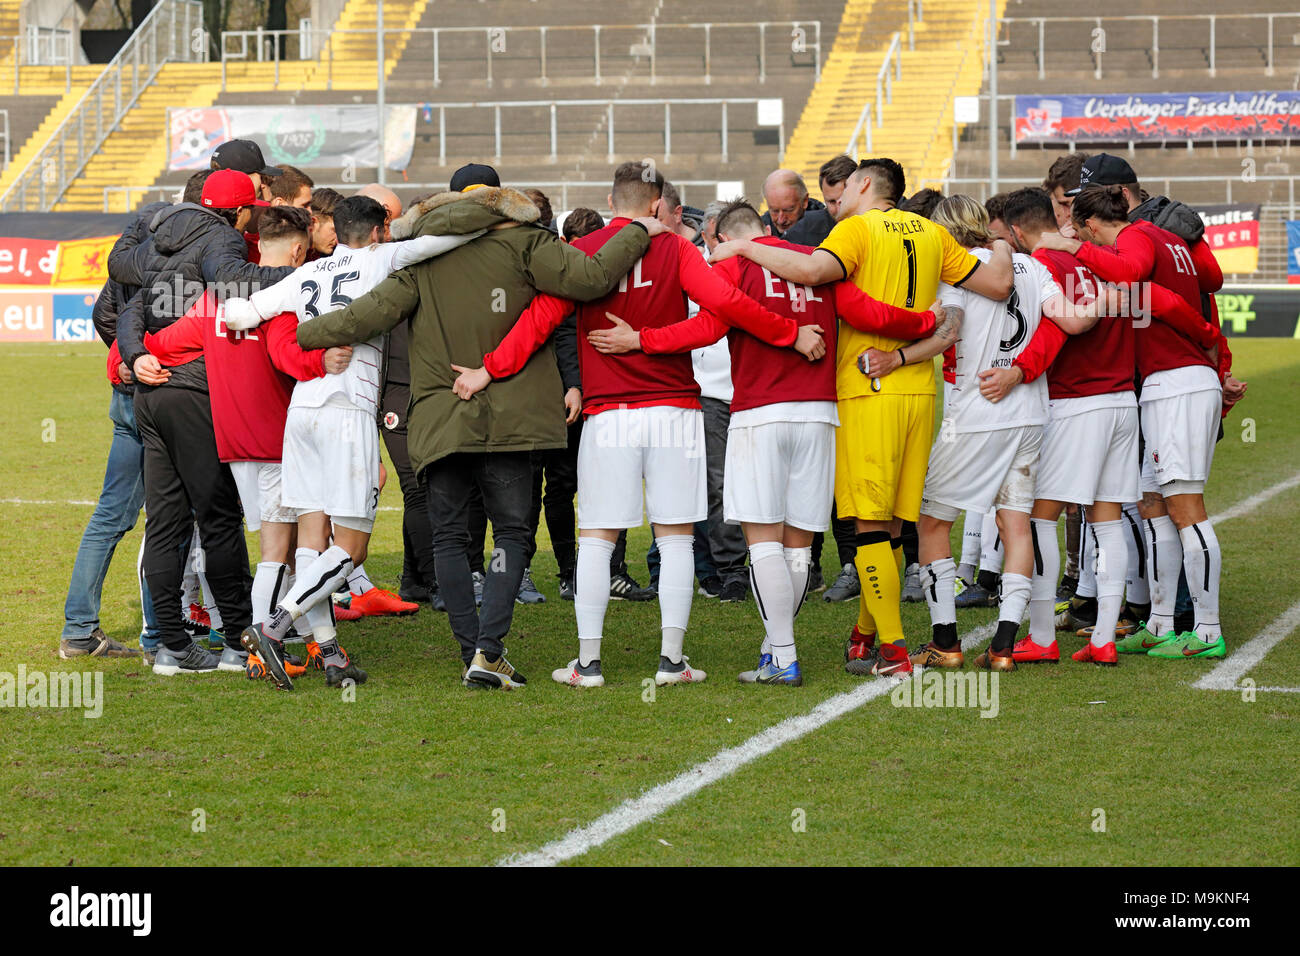 sports, football, Regional League West, 2017/2018, Grotenburg Stadium in Krefeld-Bockum, KFC Uerdingen 05 vs FC Viktoria Koeln 1904 1:1, players, coaches and helpers of Cologne building a circle, team spirit, solidarity, invocation - Stock Image